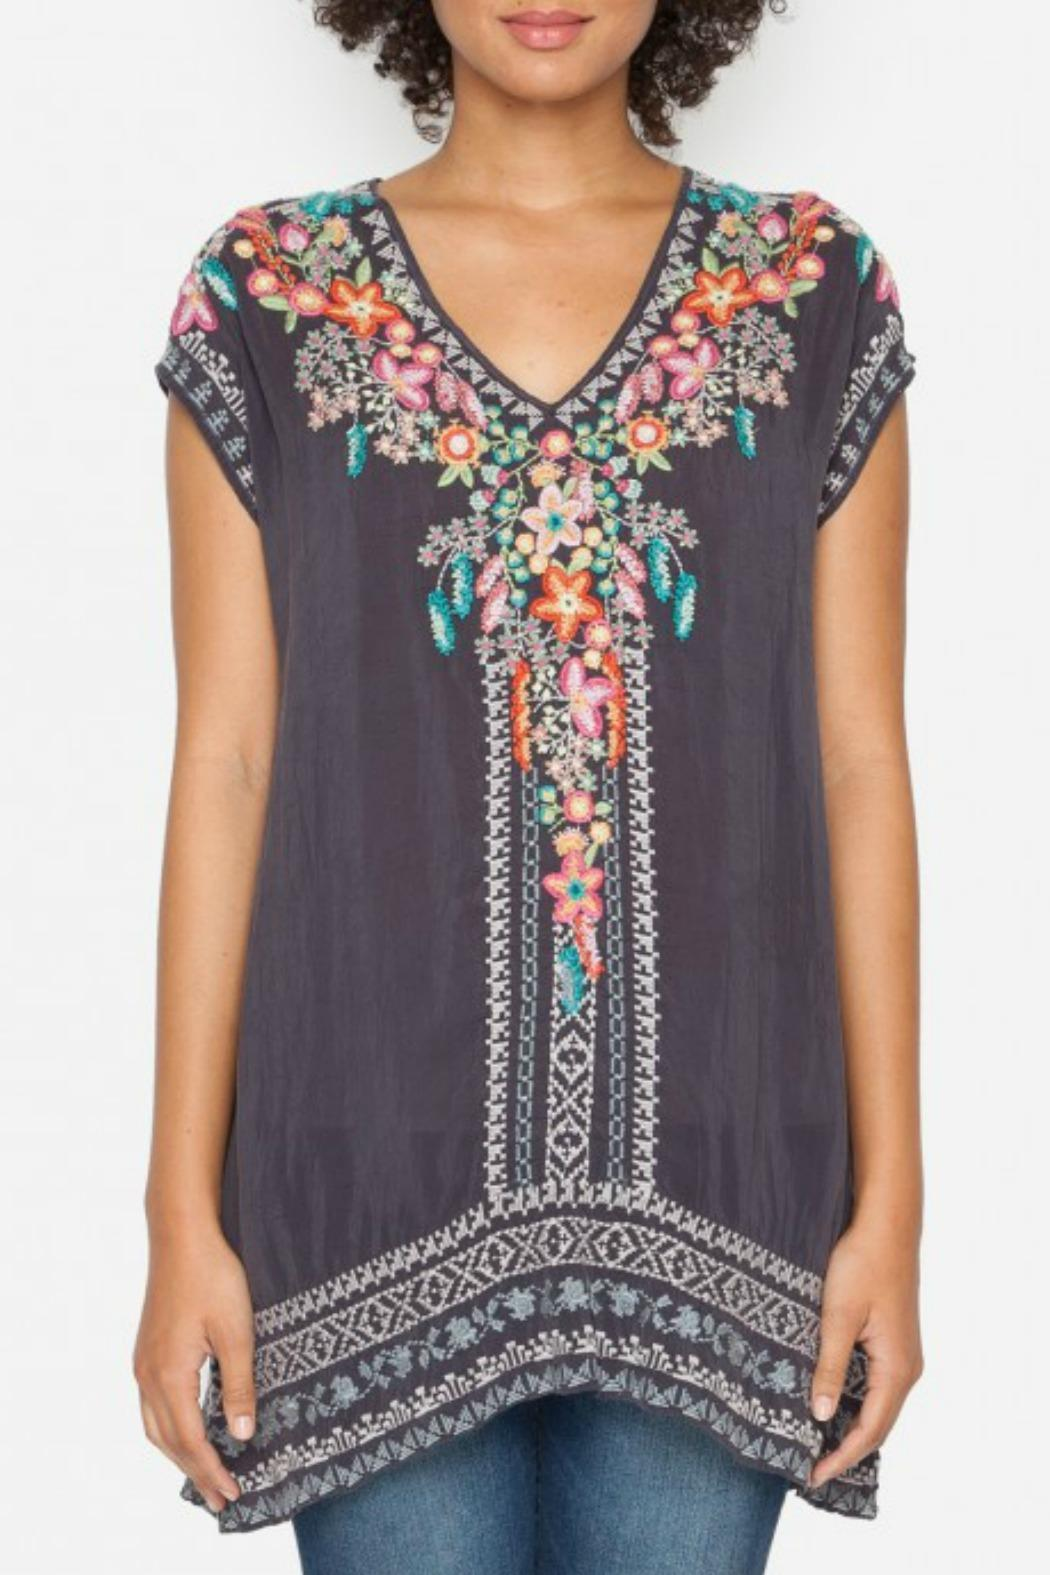 valentino embroidered tunic dress 2 934 ss17 online fast